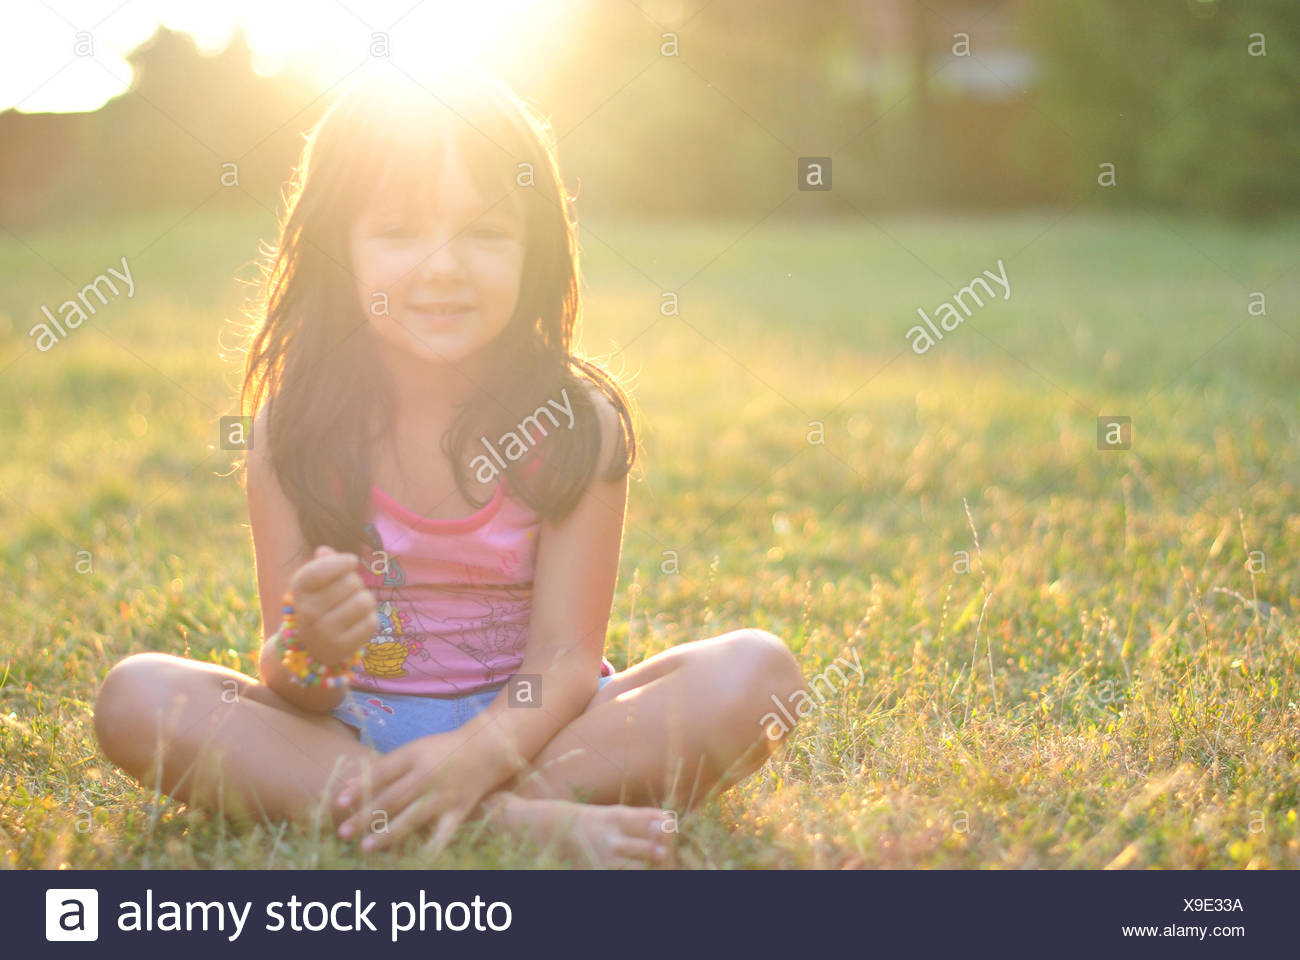 Portrait of a girl sitting cross legged on grass with sun shining on her hair - Stock Image